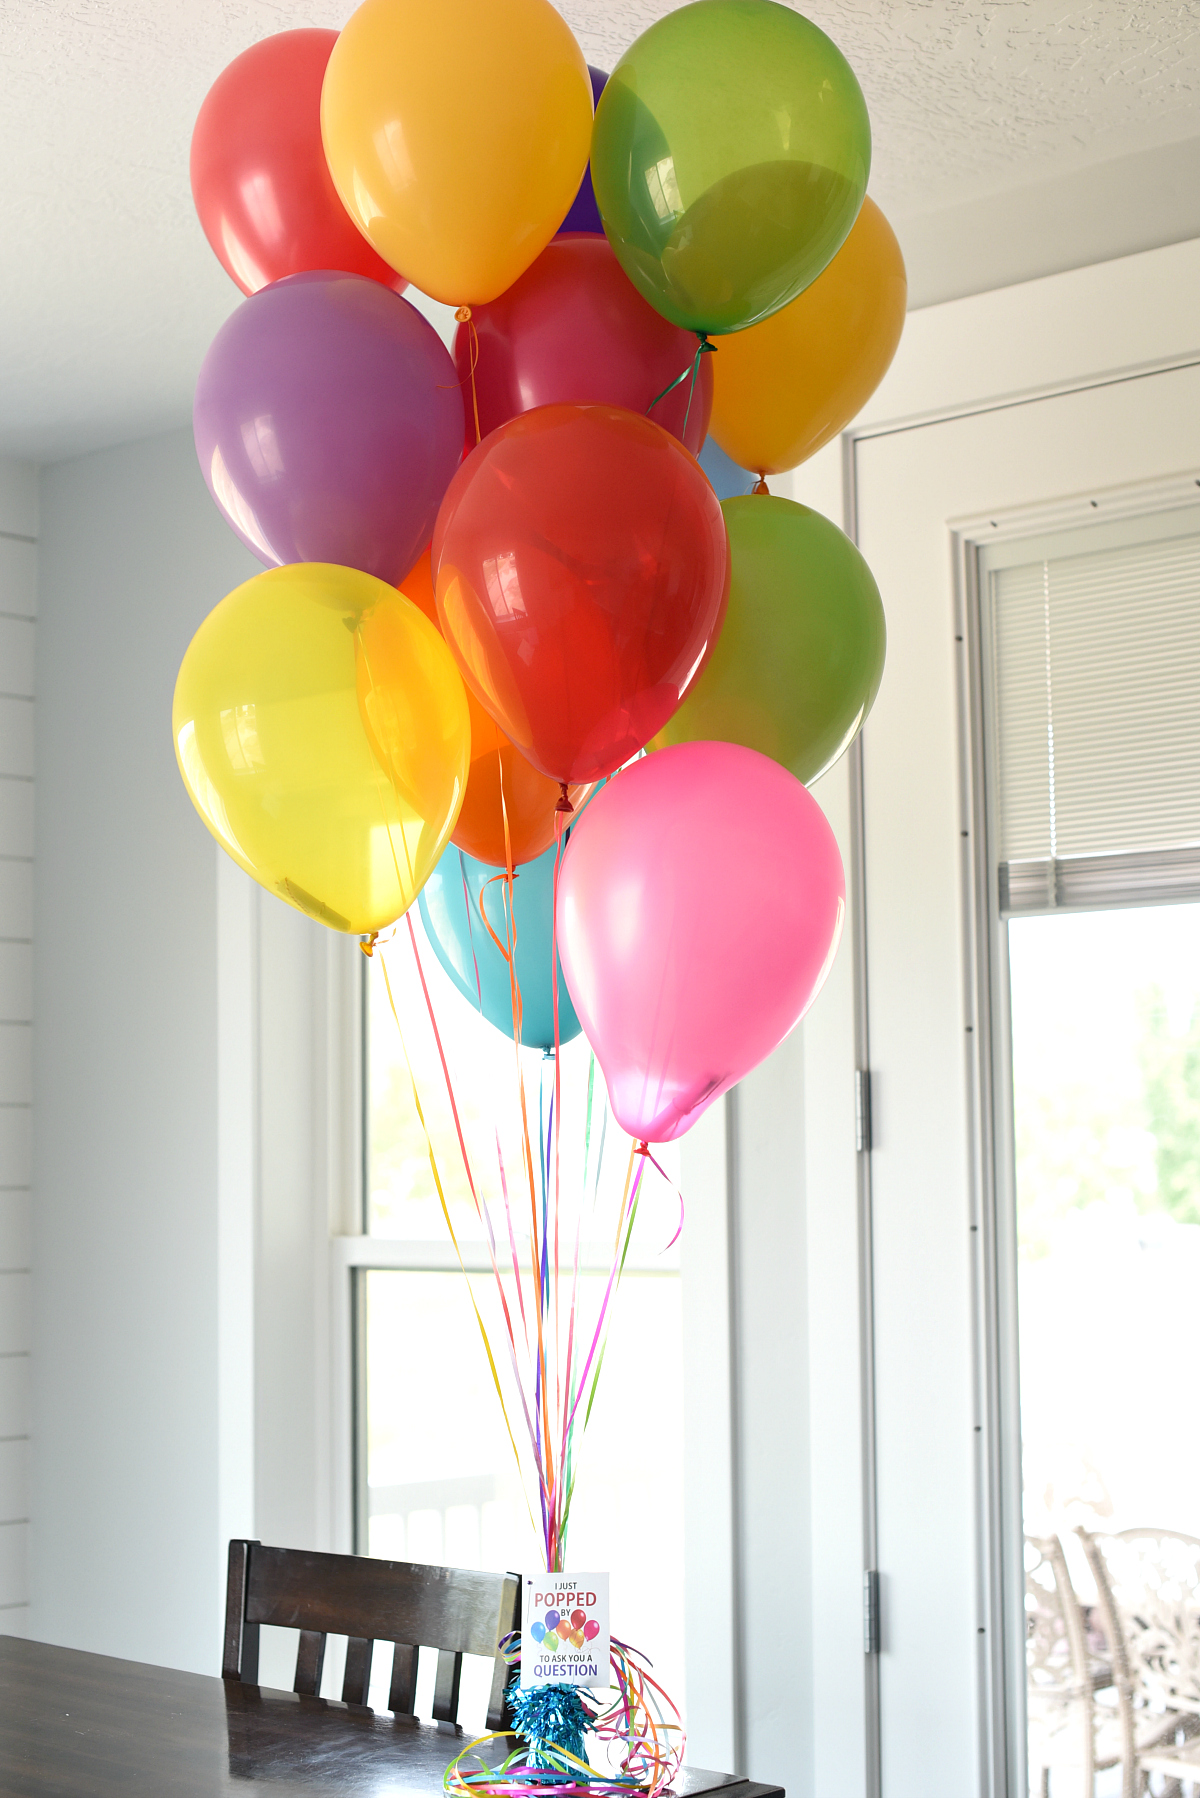 Fun Promposal Ideas with Balloons